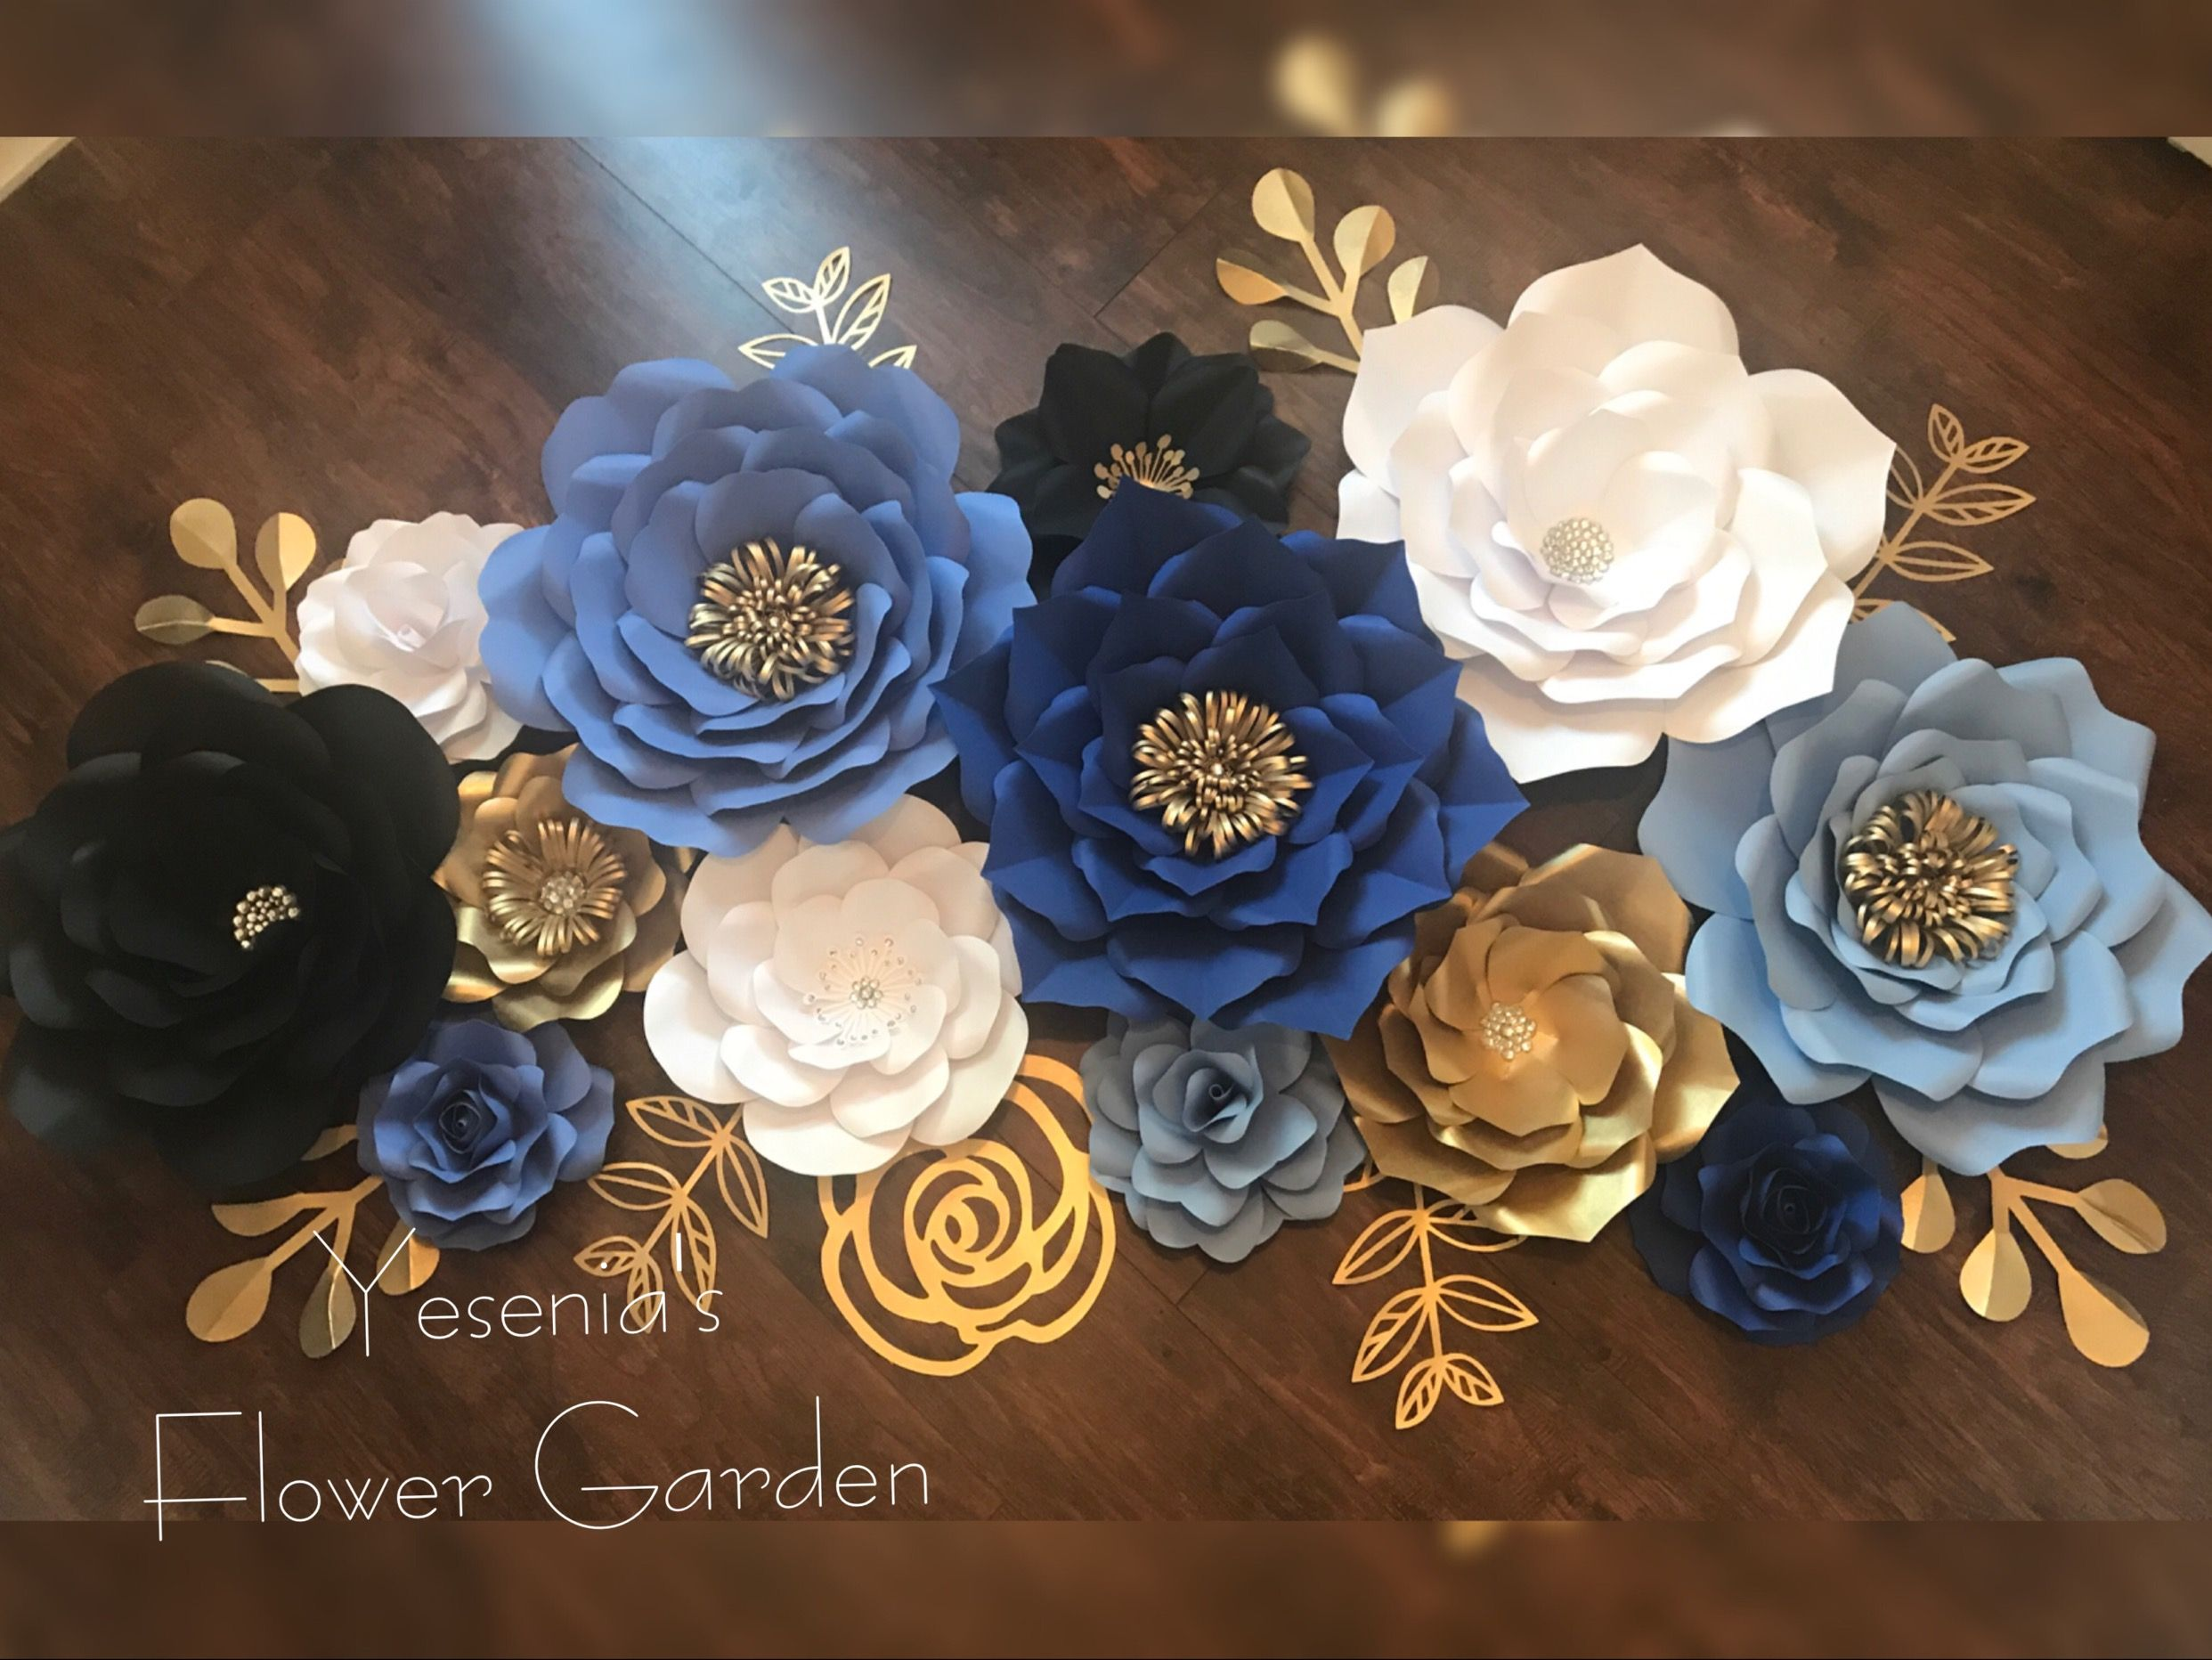 Shades of blue paper flowers instagram yeseniasflowergarden shades of blue paper flowers instagram yeseniasflowergarden mightylinksfo